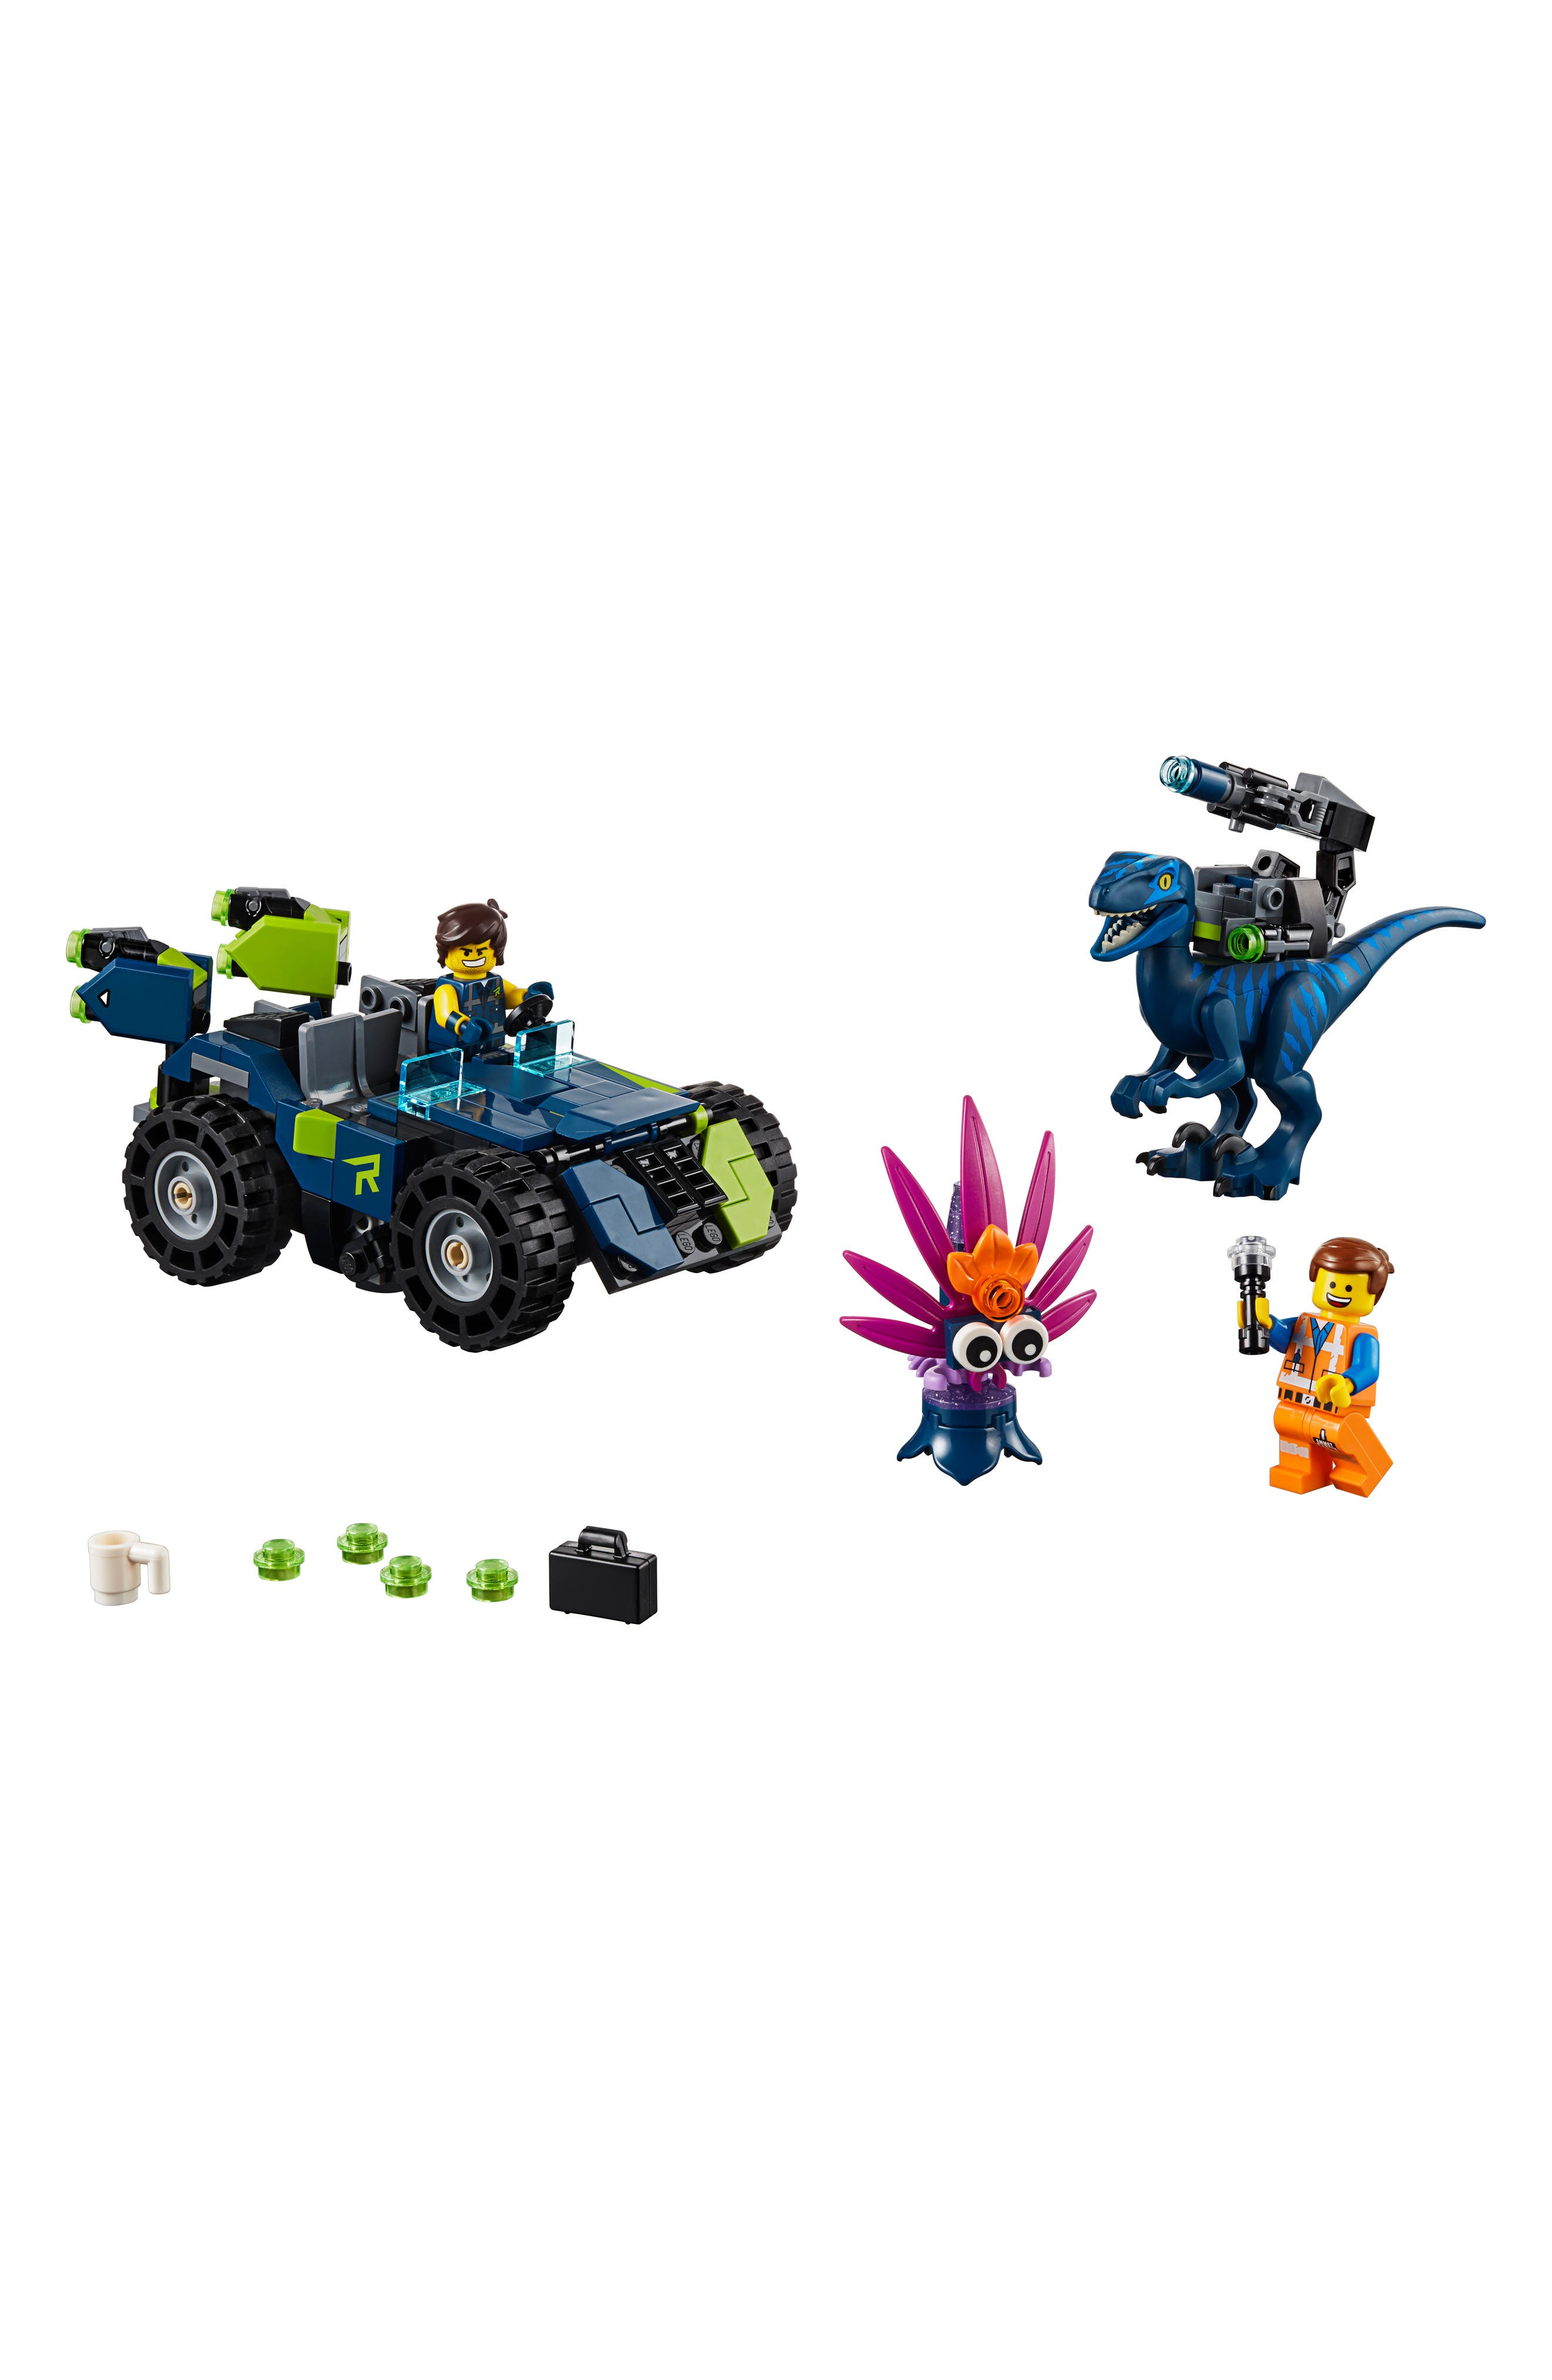 LEGO<SUP>®</SUP>,                             The LEGO<sup>®</sup> Movie 2 Rex's 3-in-1 Rex-treme Offroader Toy - 70826,                             Main thumbnail 1, color,                             960